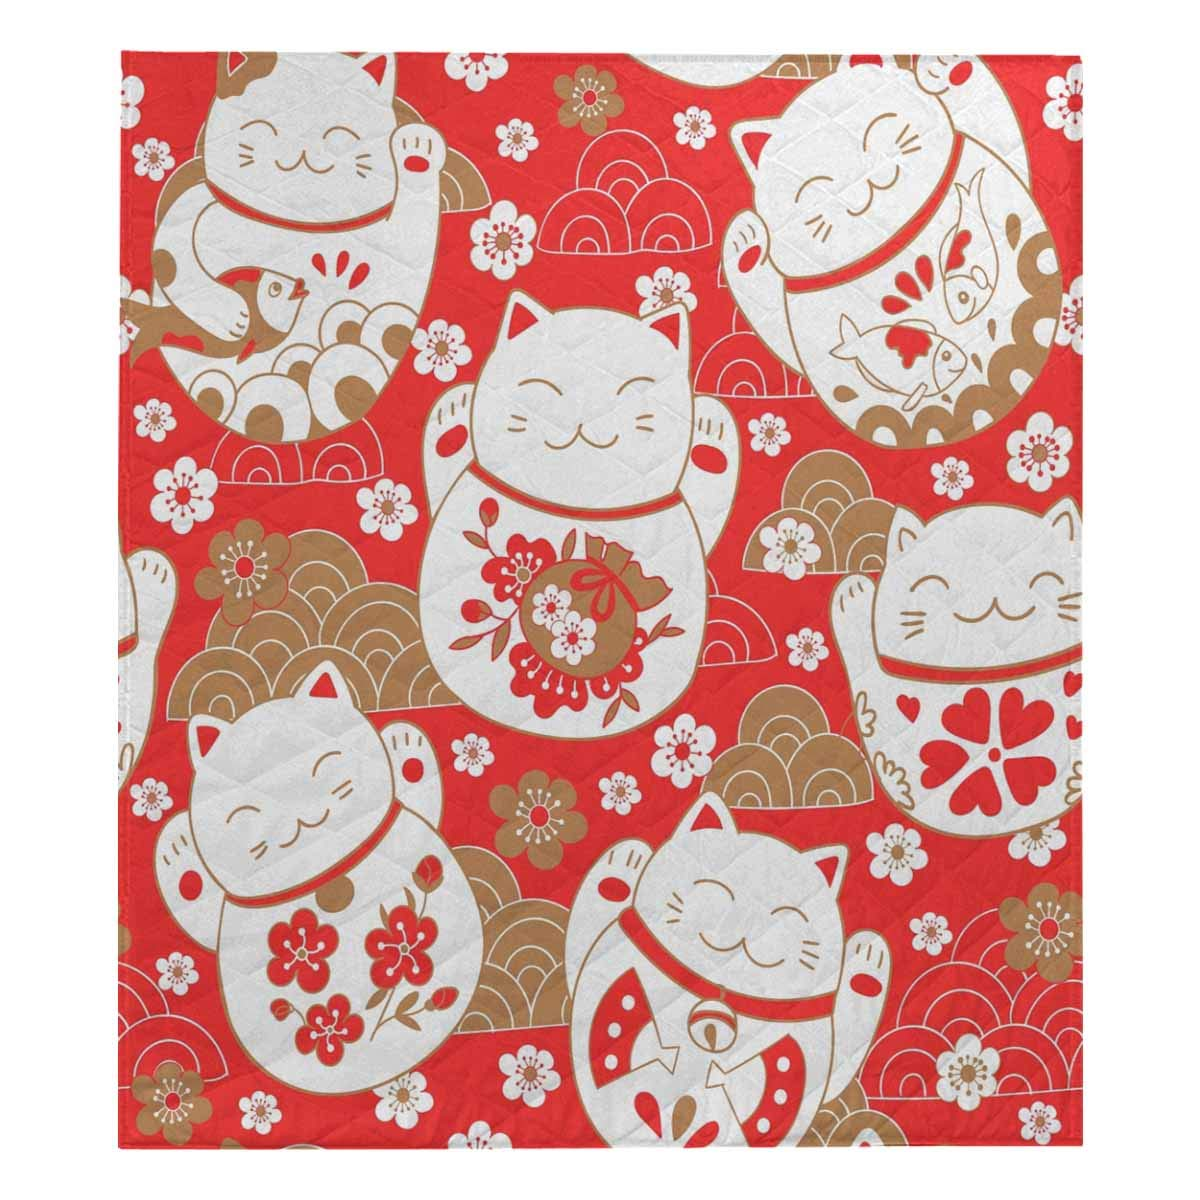 InterestPrint Cute Pattern with Cats, Lucky Charms, Maneki Neko, in Oriental Style Soft Premium Fabric Quilt Bedding Twin Size 80''